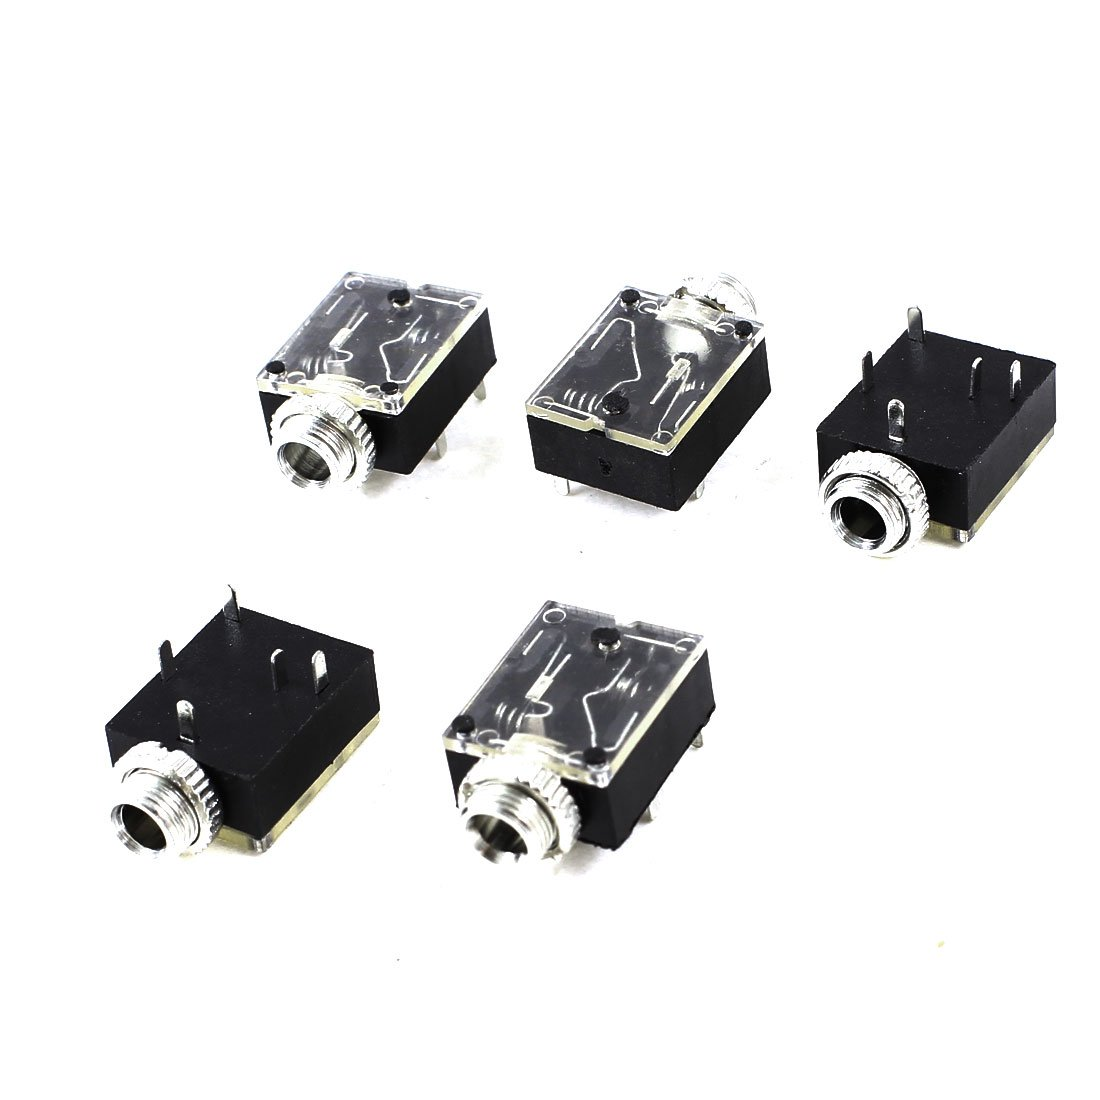 popular stereo jack buy cheap stereo jack lots from stereo wsfs hot 5 pcs 5 pin 3 5mm female audio stereo jack socket pcb panel mount